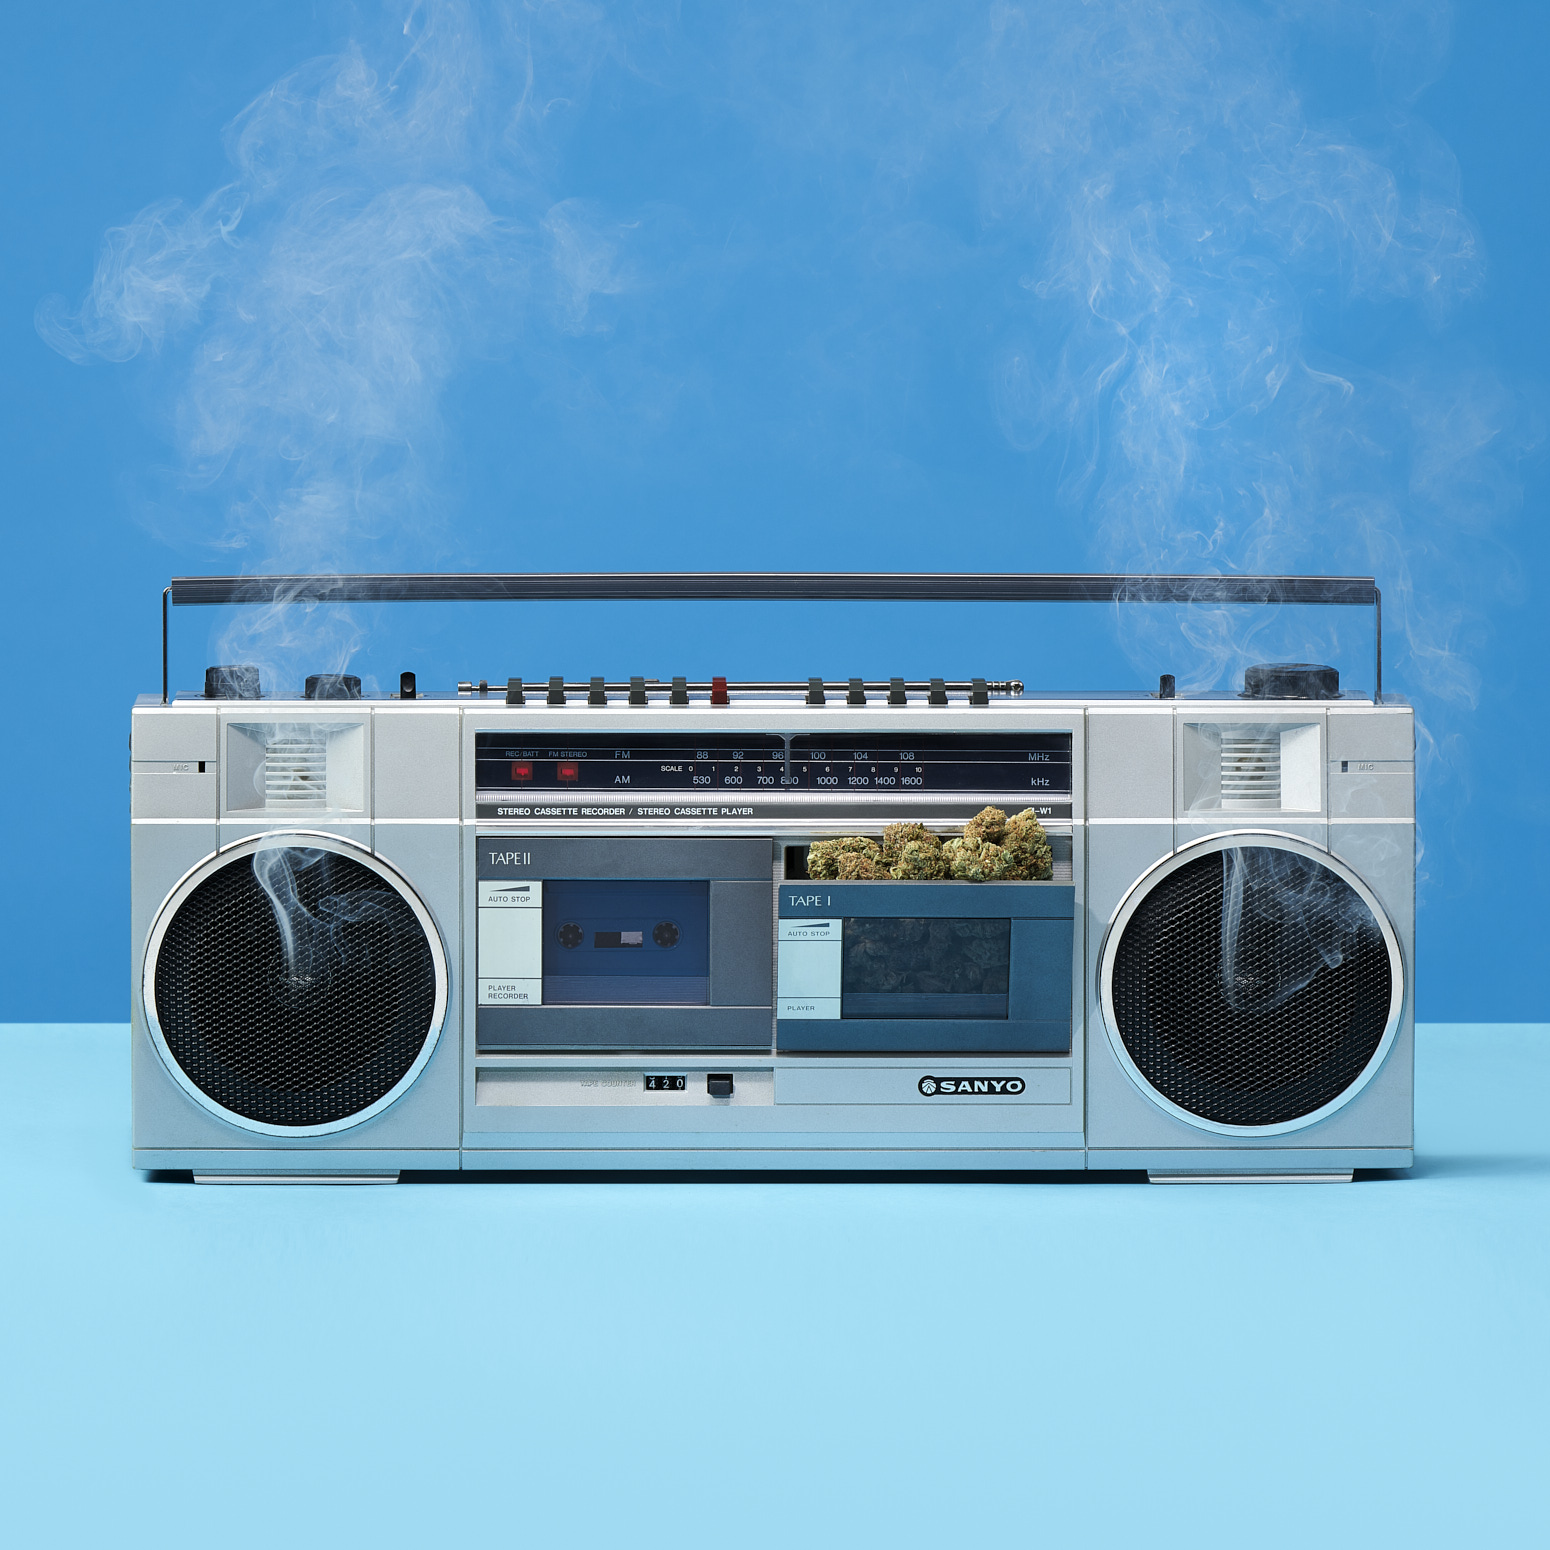 Boom Box Smoking Weed  by Jessica Stewart Prop Stylist Specializing in Cannabis Imagery and Styling